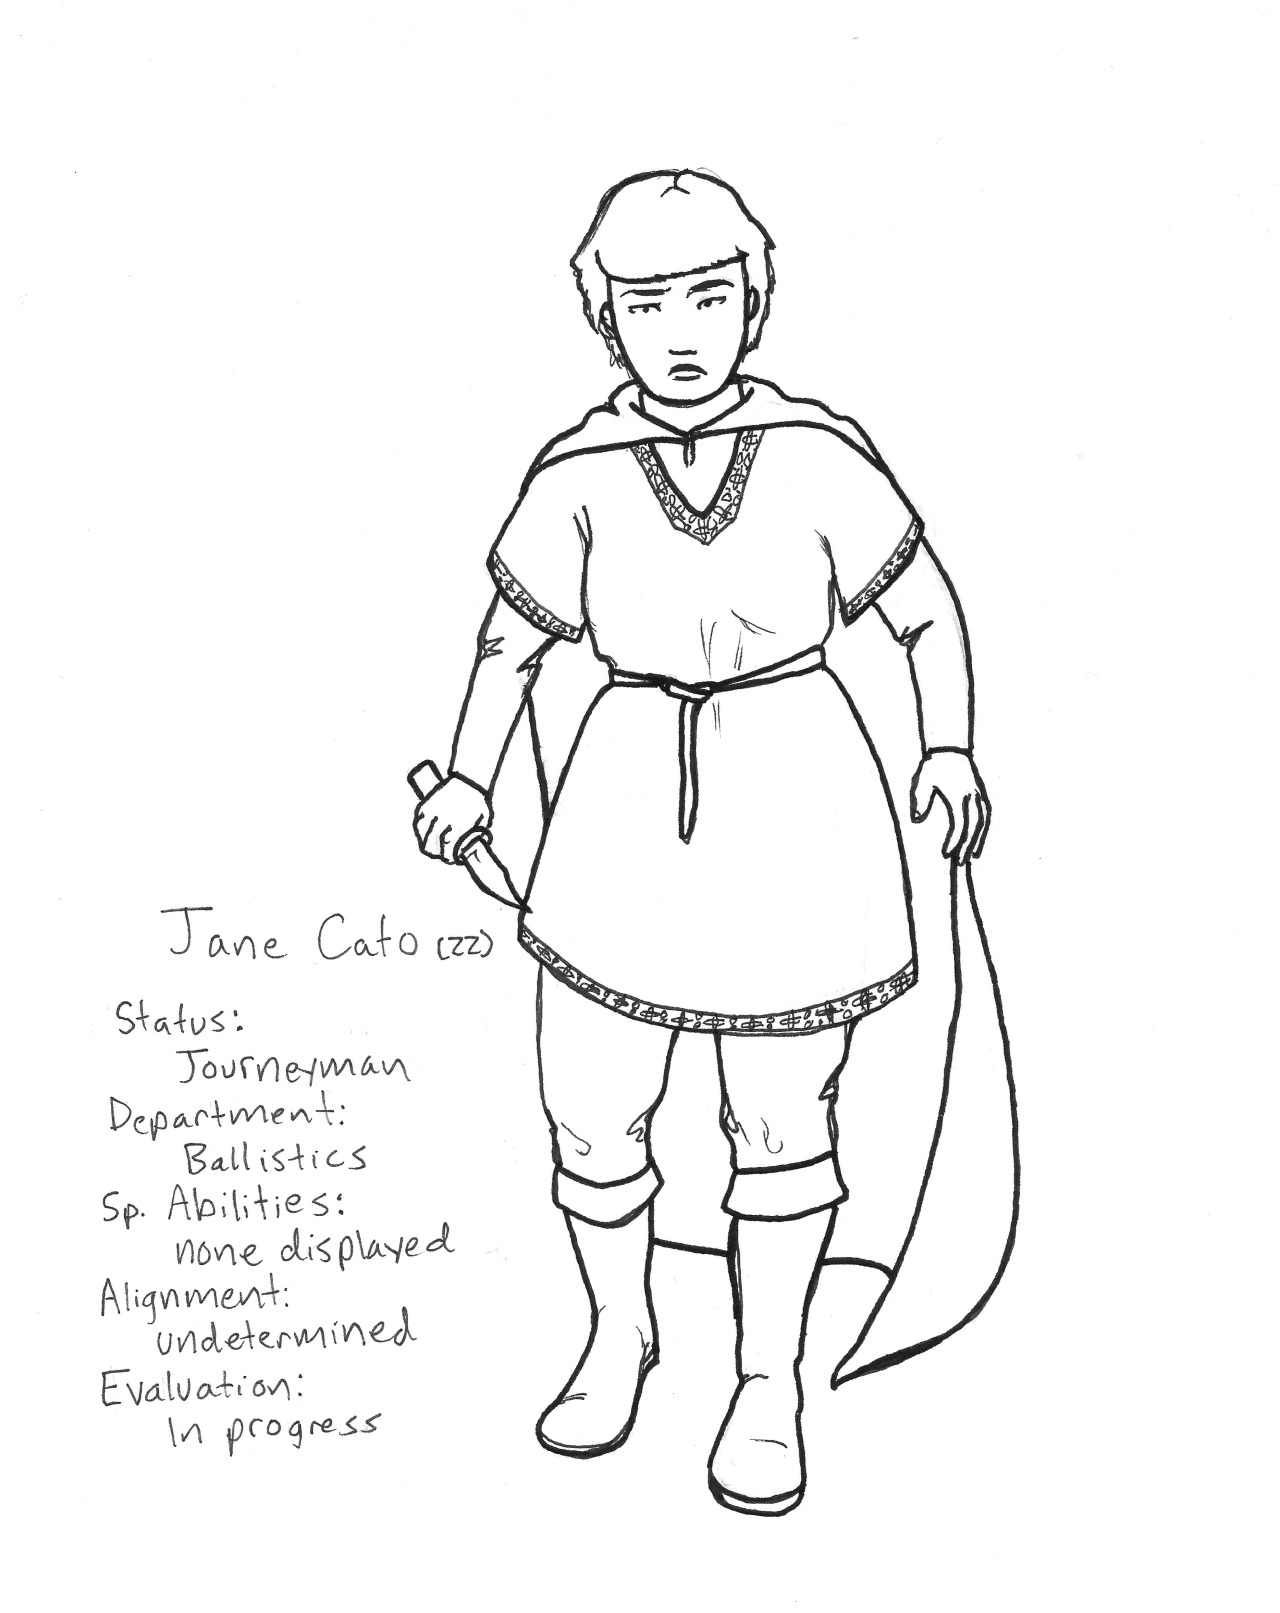 To start us off, here's my (probably) final design for co-protagonist Jane Cato. Jane has completed the requisite six years of secondary magical studies and is now classified as a journeyman mage, although she has yet to distinguish herself whatsoever in her field of study. She is the only heir to the esteemed Cato lineage, and is carrying on her family's legacy of war magic, despite a great deal of advice to the contrary. An informal survey of Jane's professors and peers suggests that Jane's most appealing personal quality is being very, very wealthy.